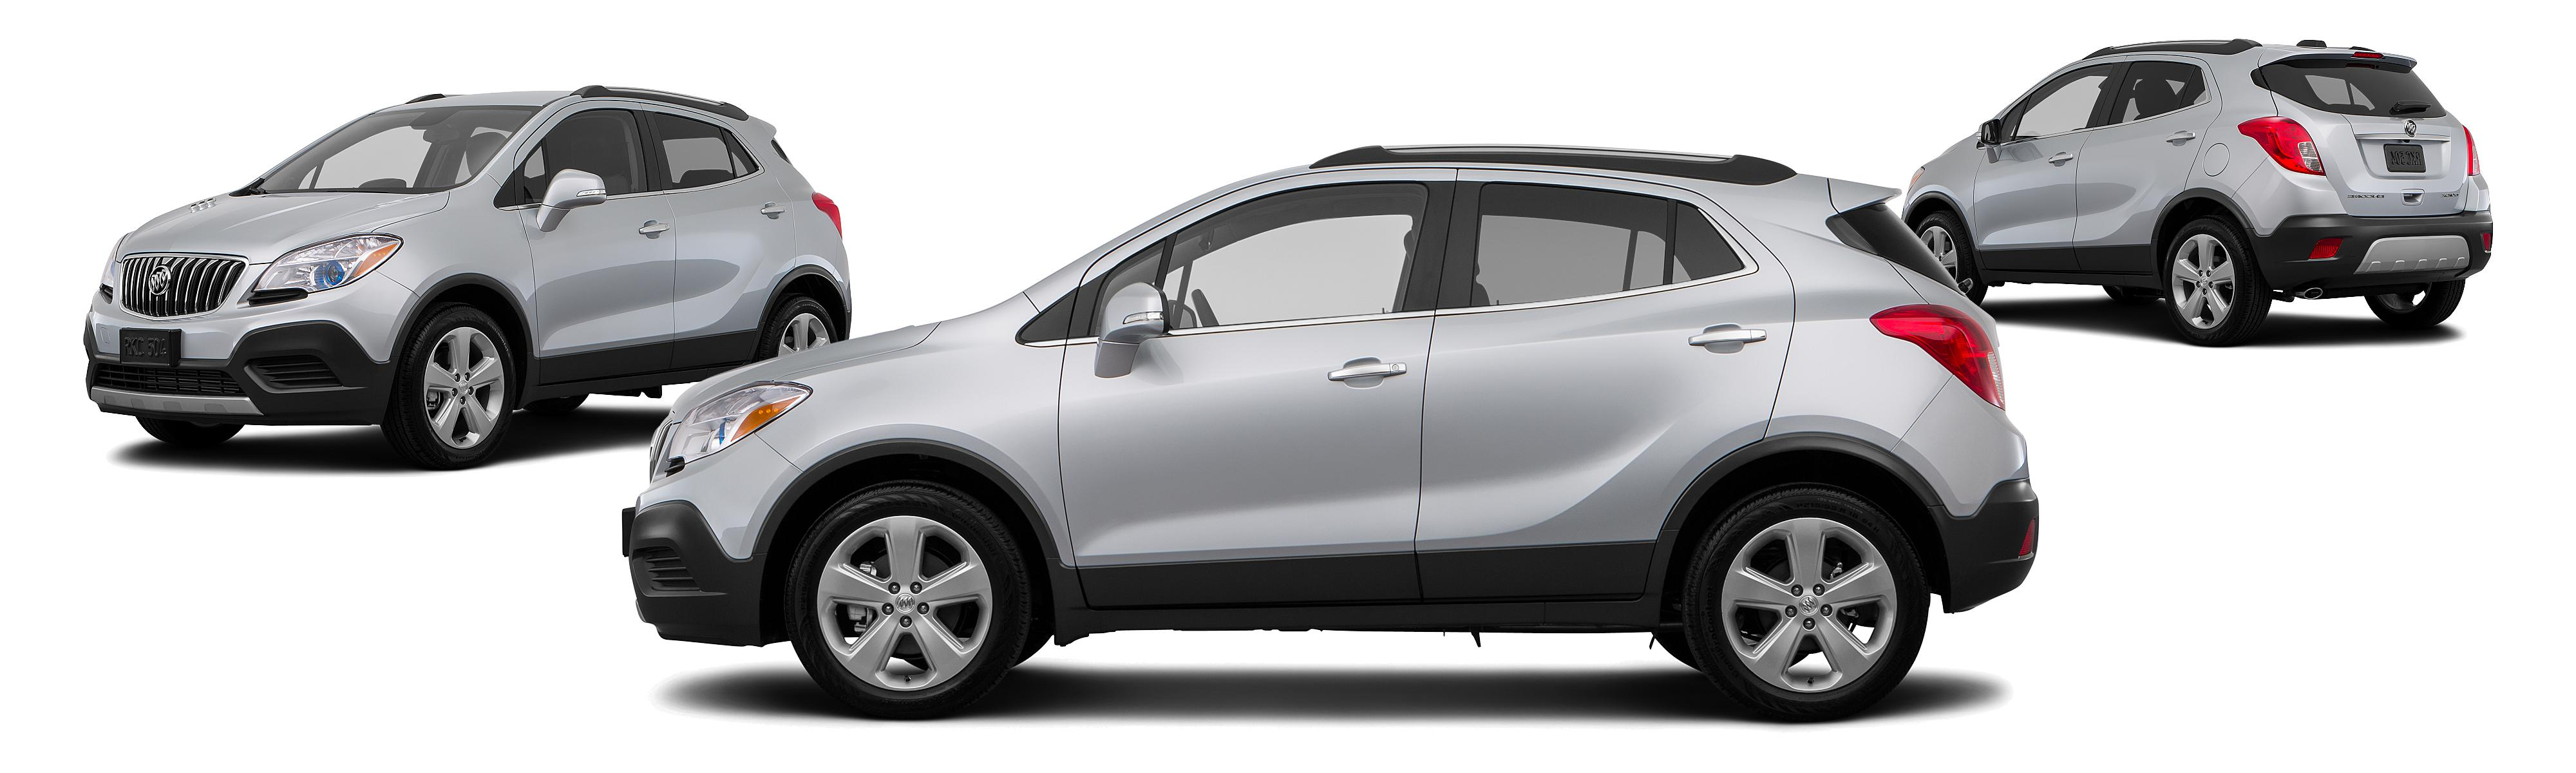 encore ii metallic groovecar base a crossover quicksilver research buick large composite lease preferred